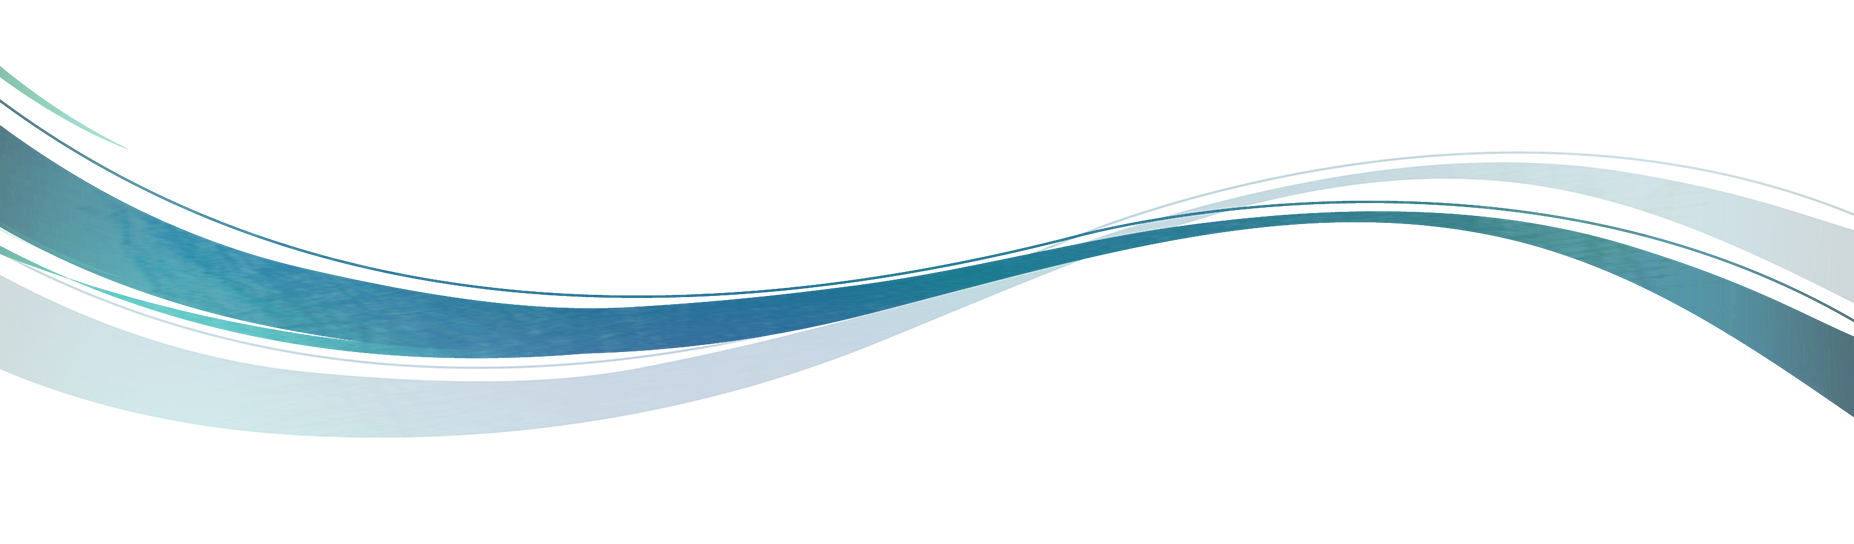 Abstract lines png. Brand blue angle transprent